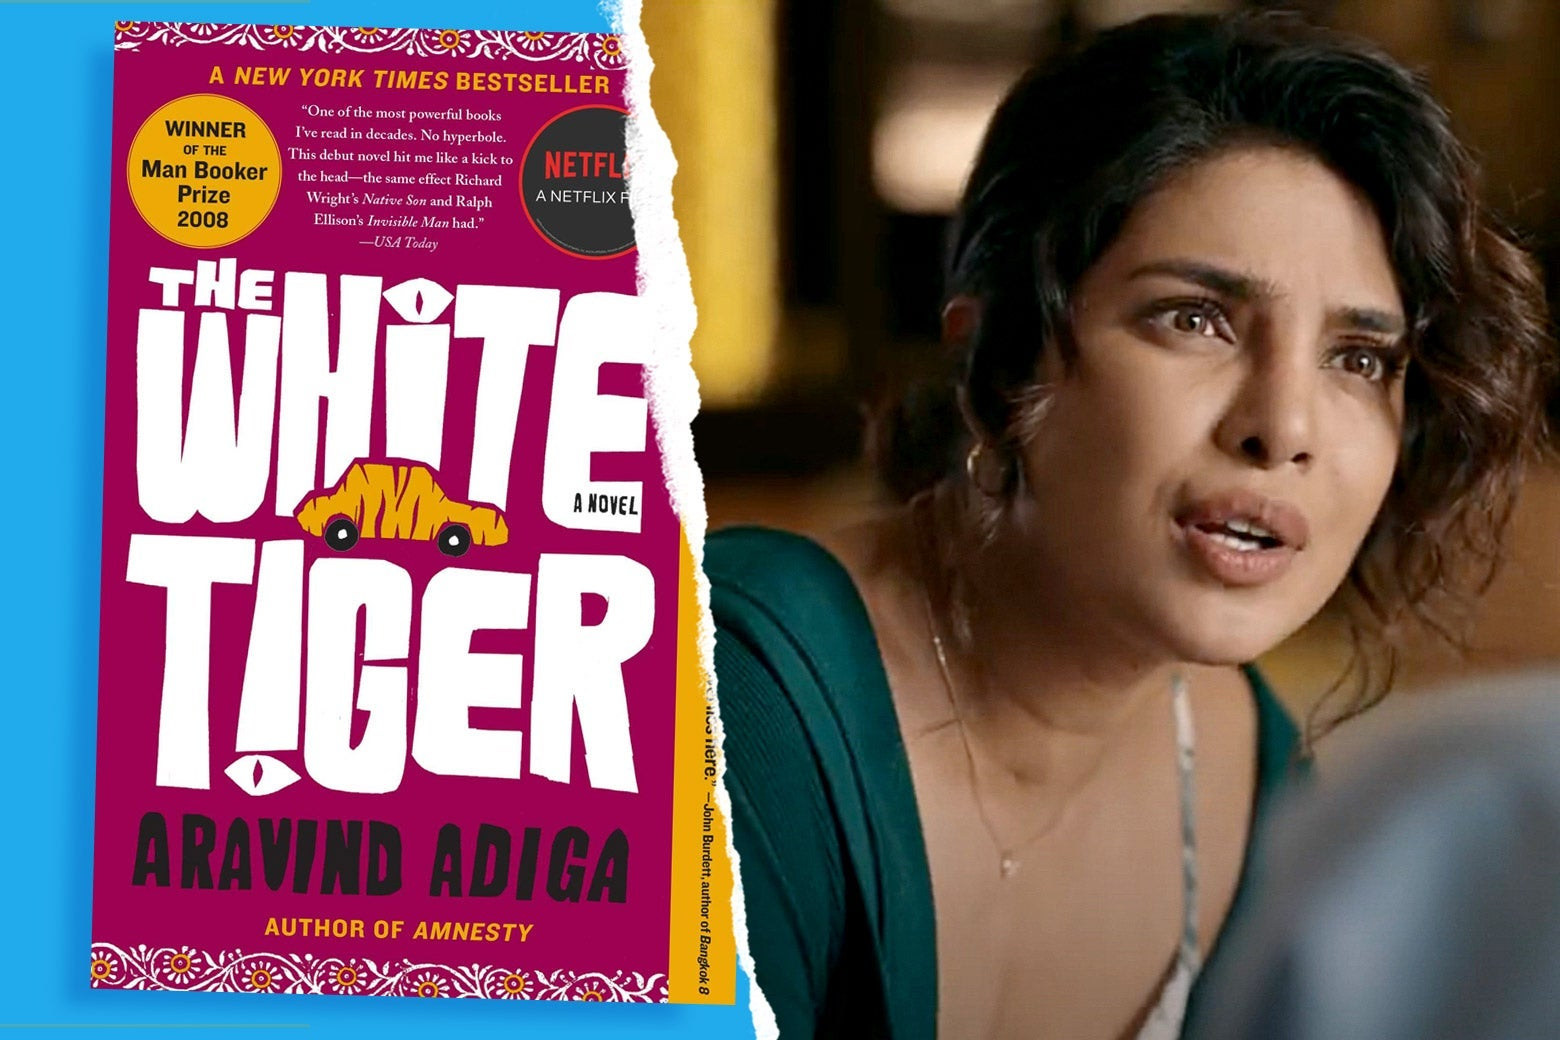 How Faithful Is The White Tiger to the Man Booker Prize–Winning Novel?